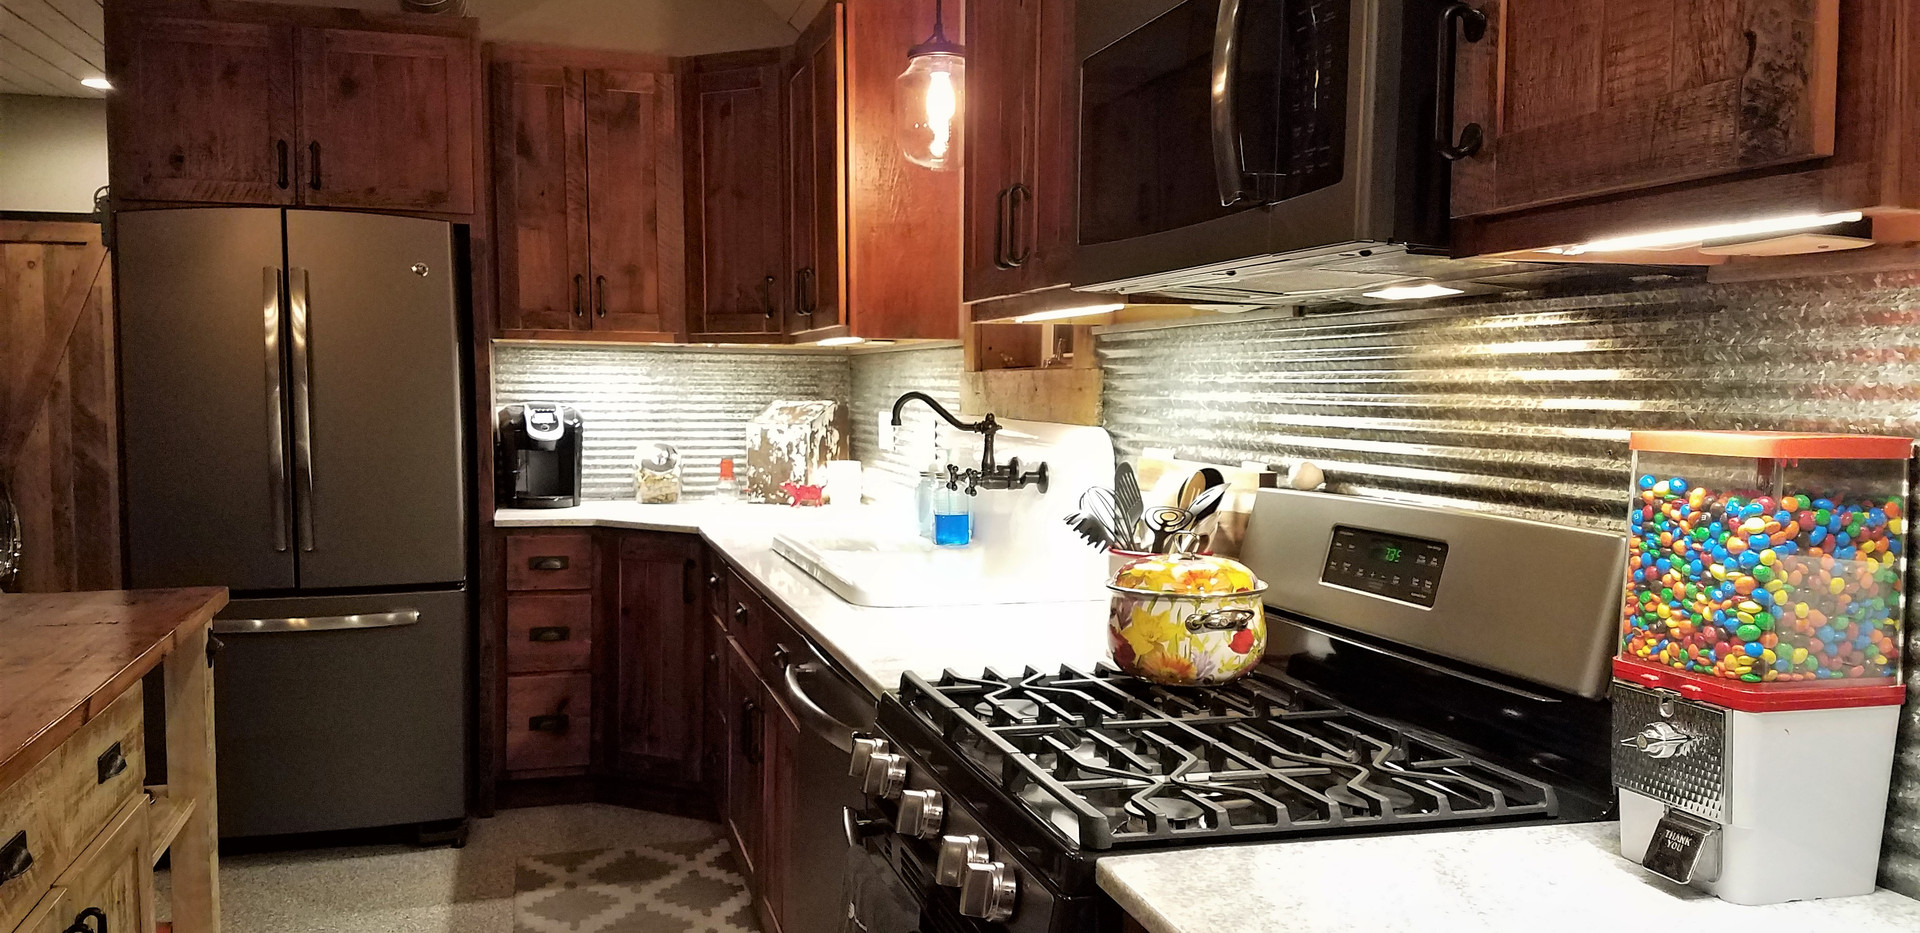 Reclaimed barn wood cabinetry